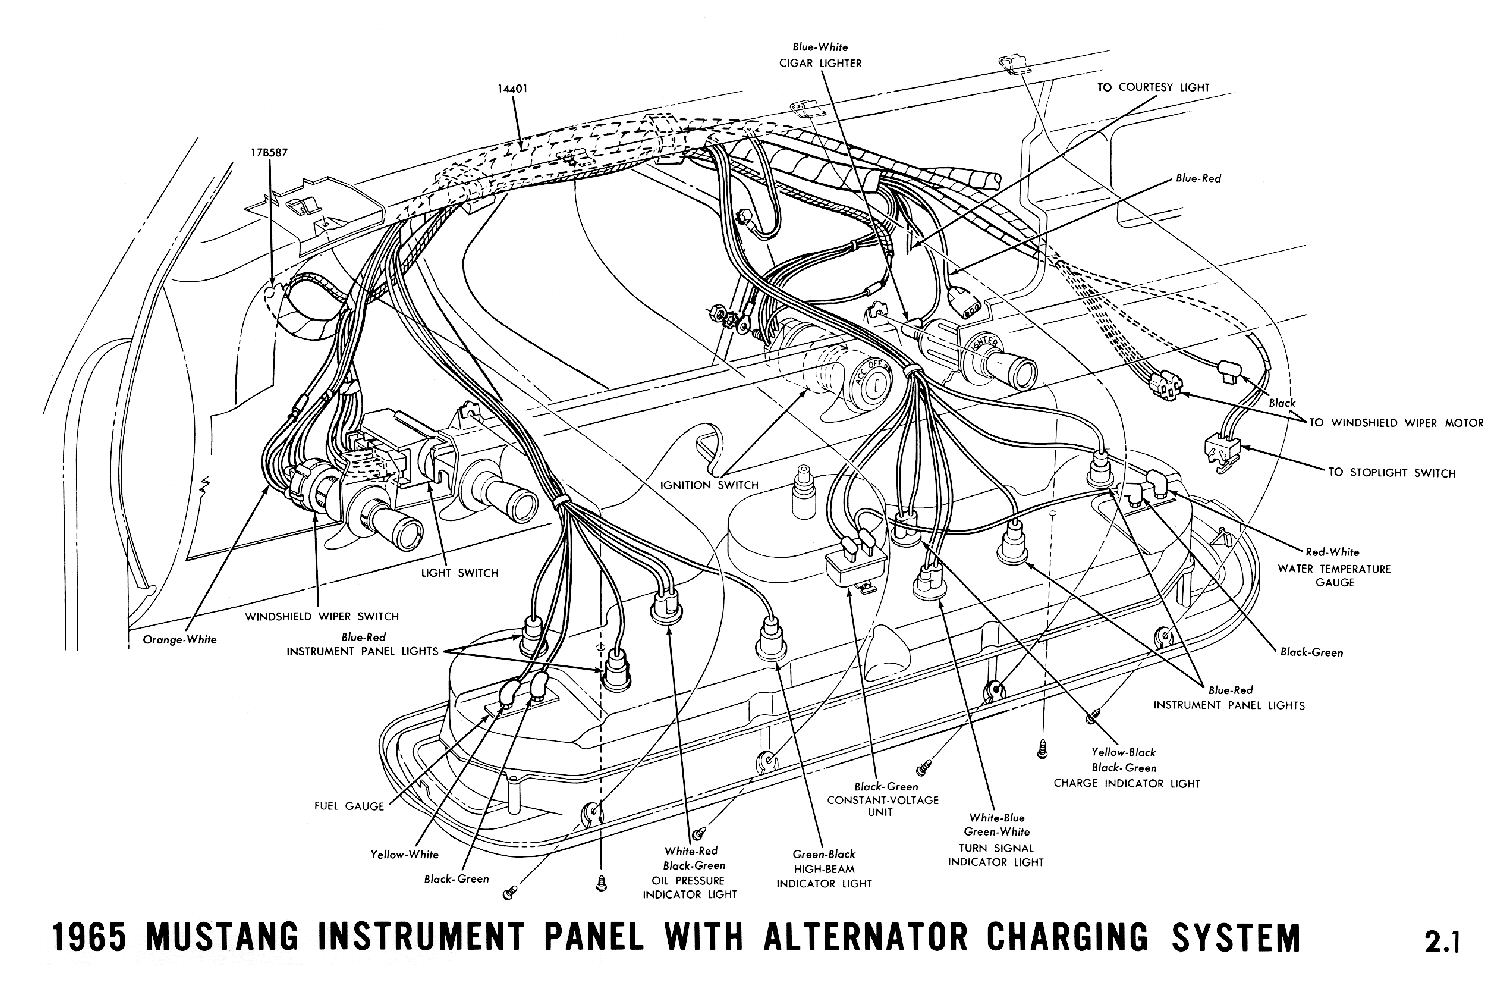 1965a 65 mustang dash wiring 1965 mustang wiring harness diagram 1970 Mustang Dash Wiring Diagram at bakdesigns.co